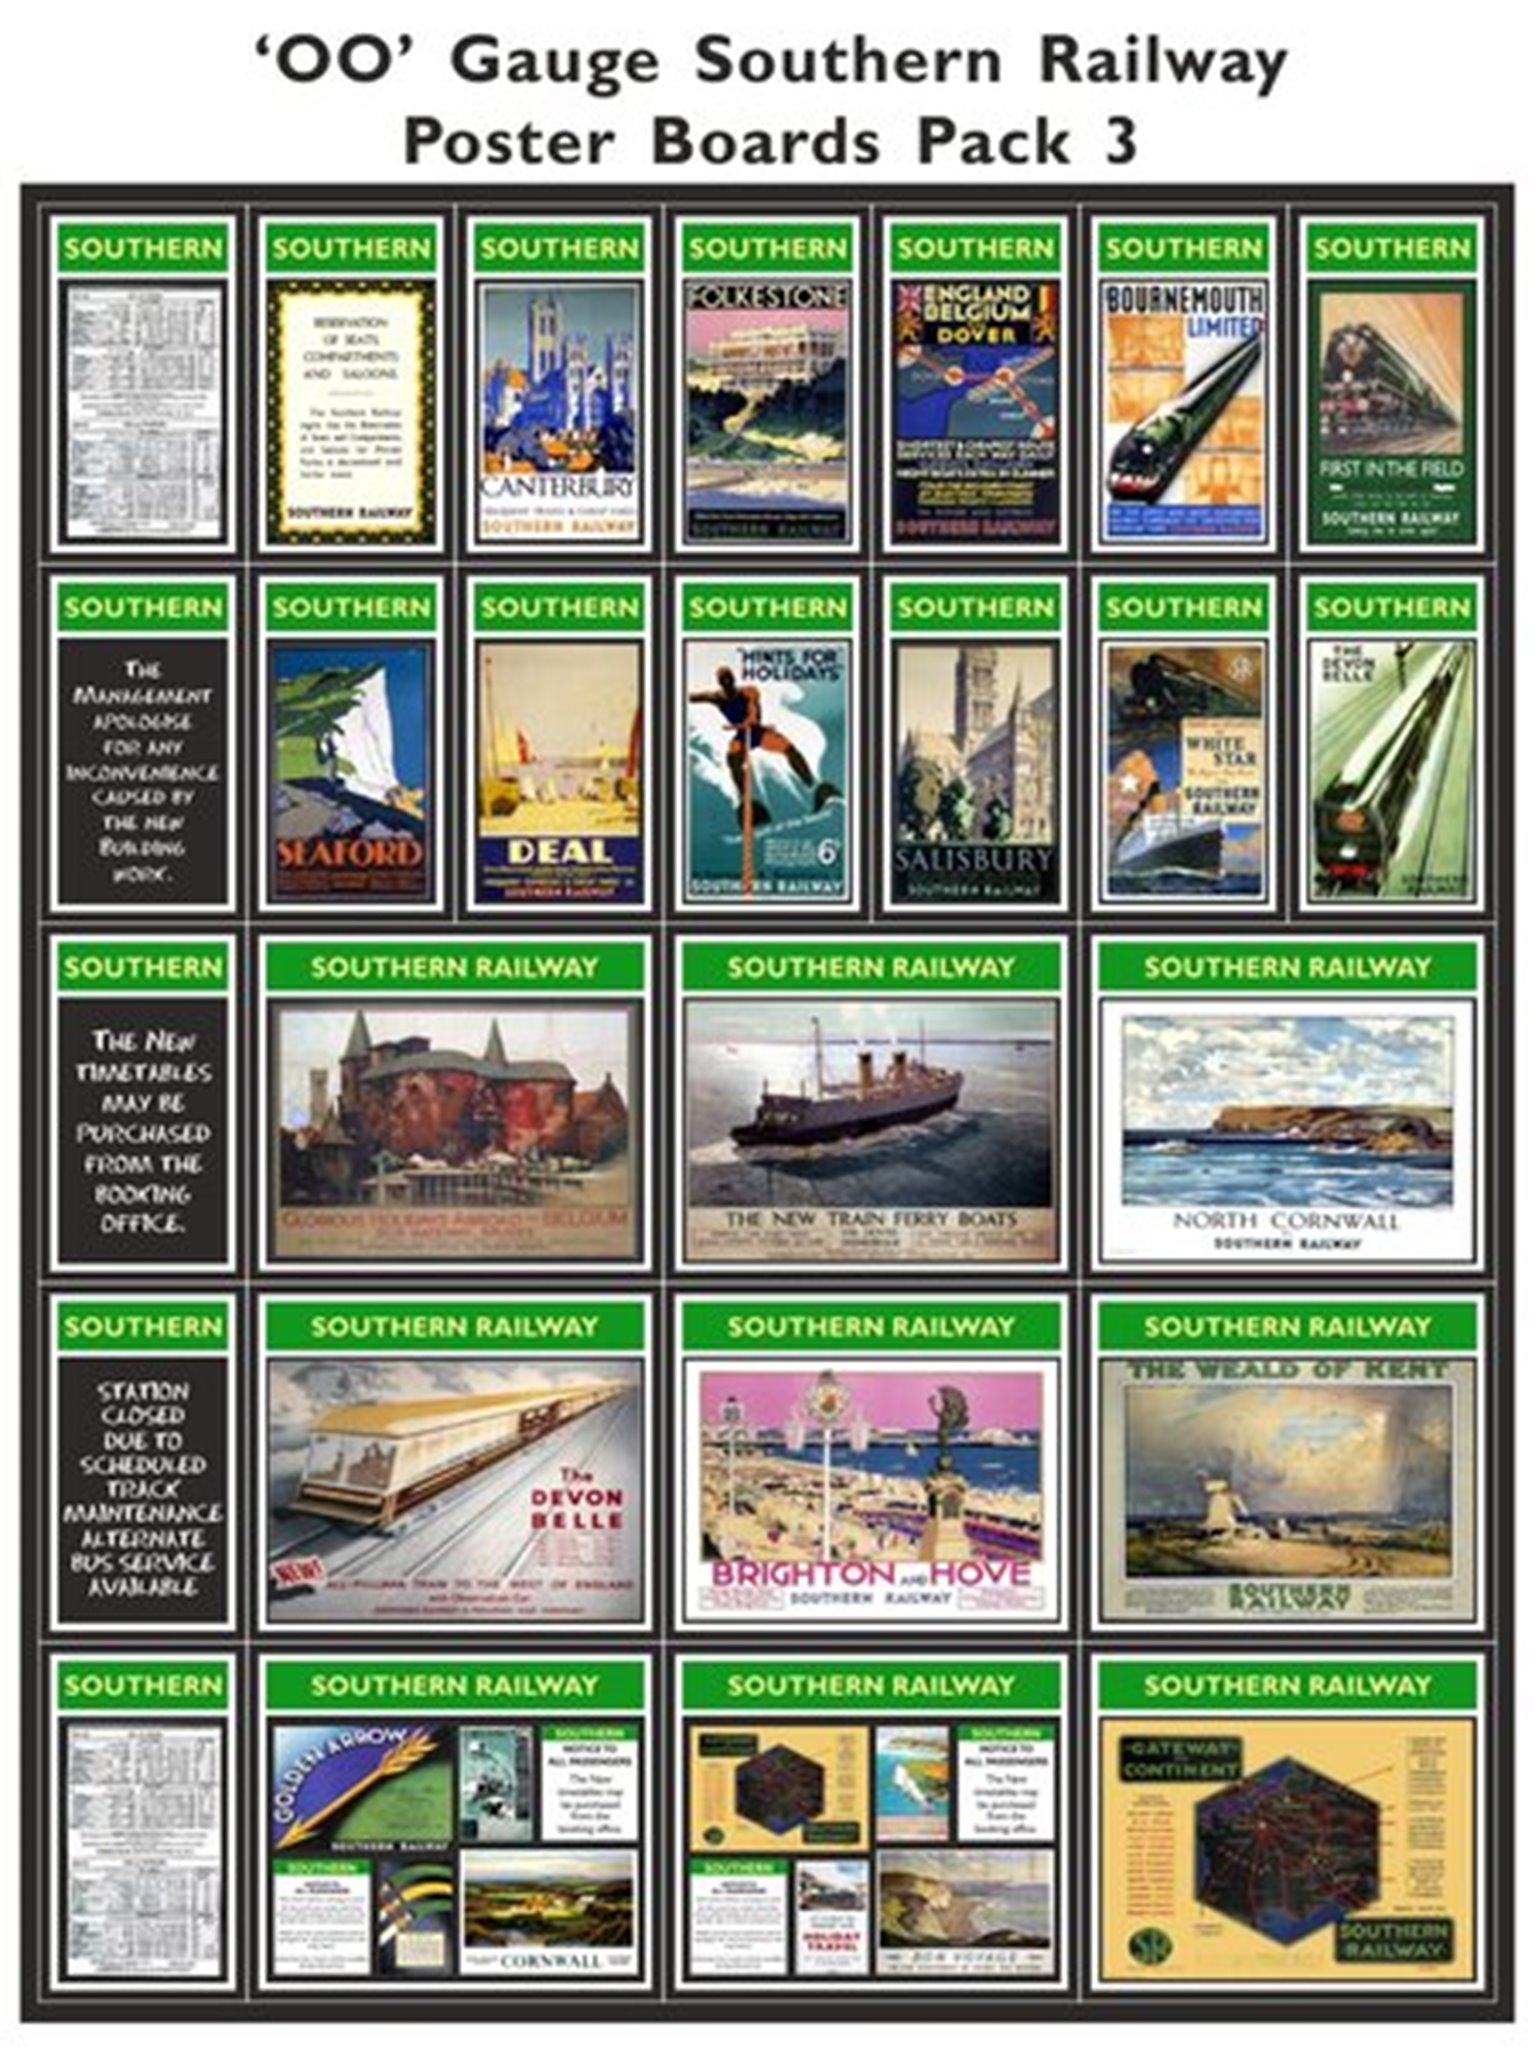 Southern Railway Poster Boards Pack 3